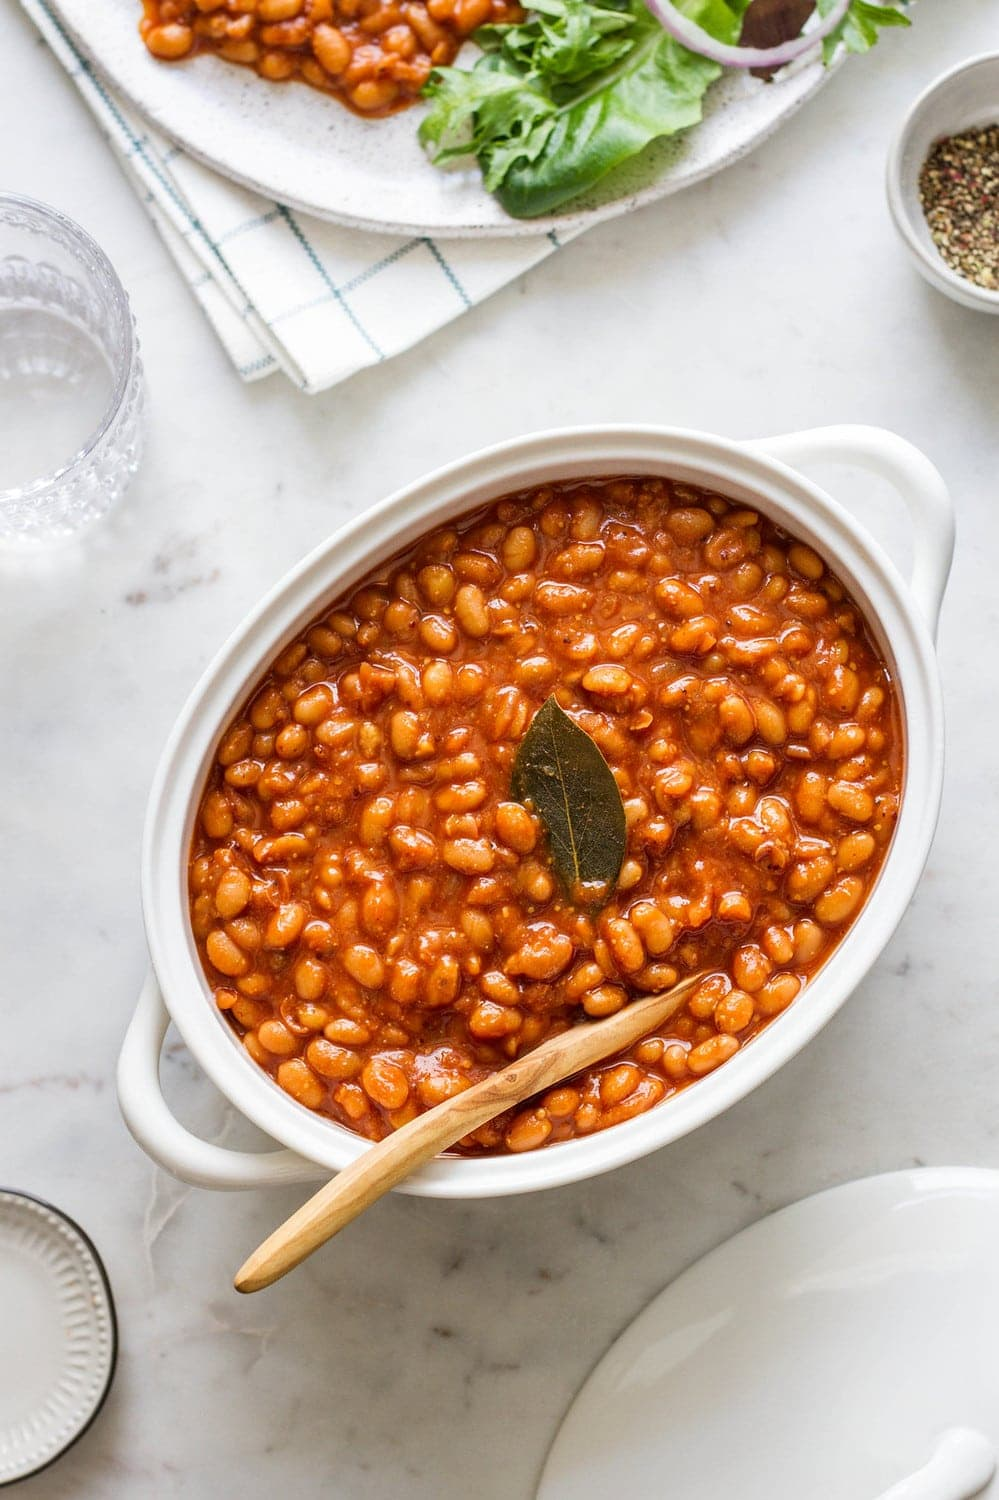 Healthy Baked Beans Instant Pot Slow Cooker The Simple Veganista